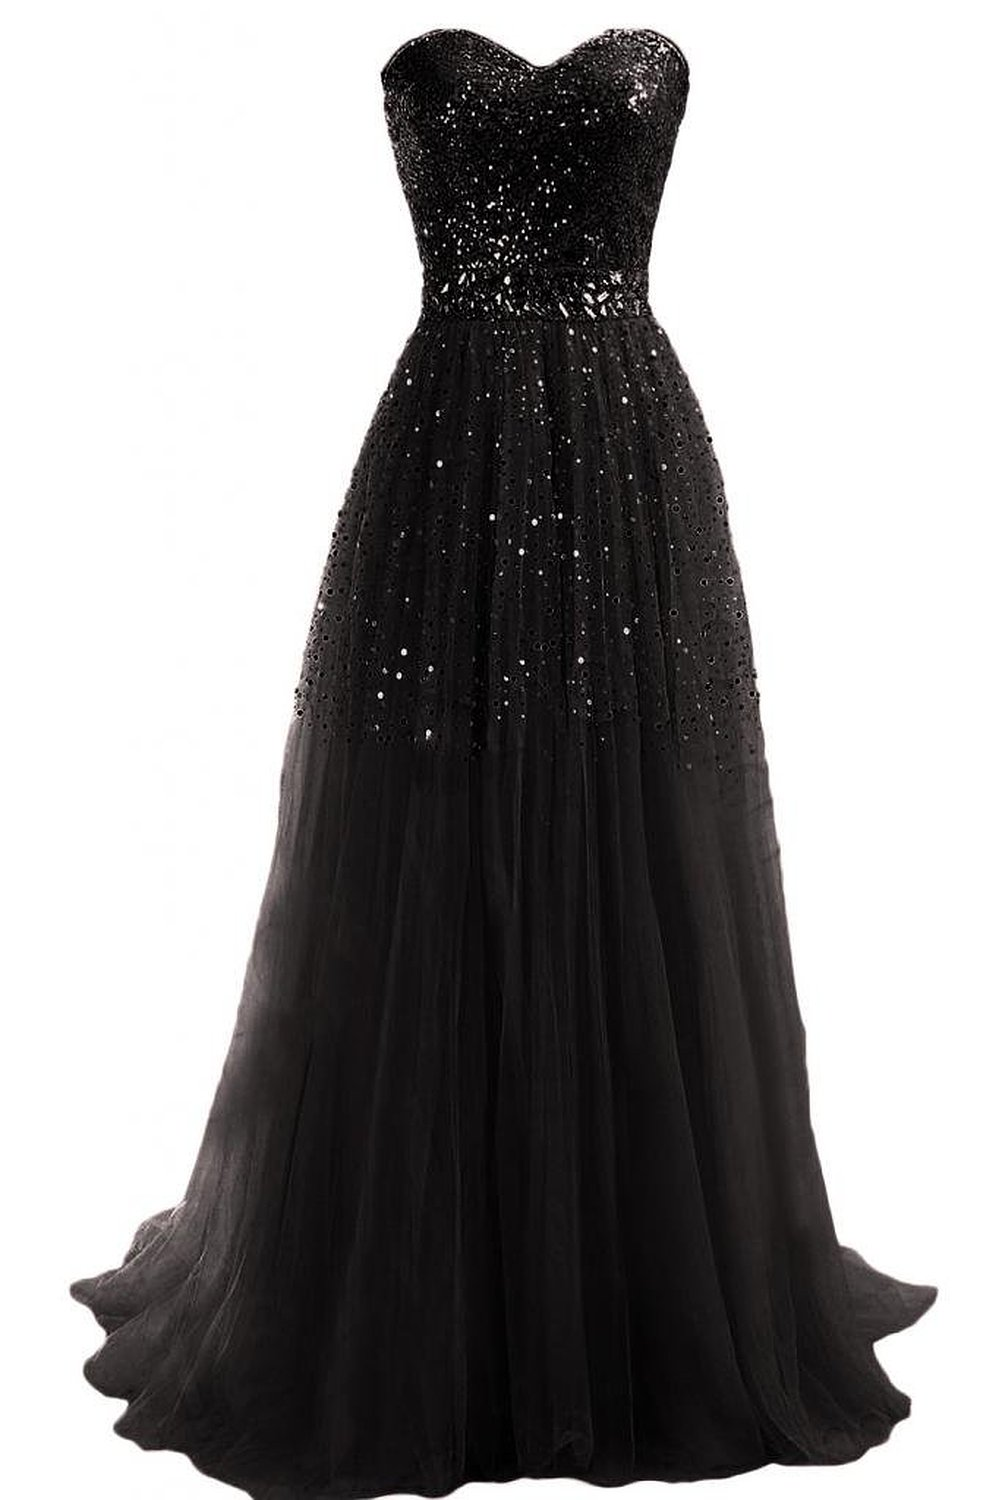 Emma Y Exquisite Sweetheart Tulle Long Prom Dress Party Gowns at Amazon Women's Clothing store: